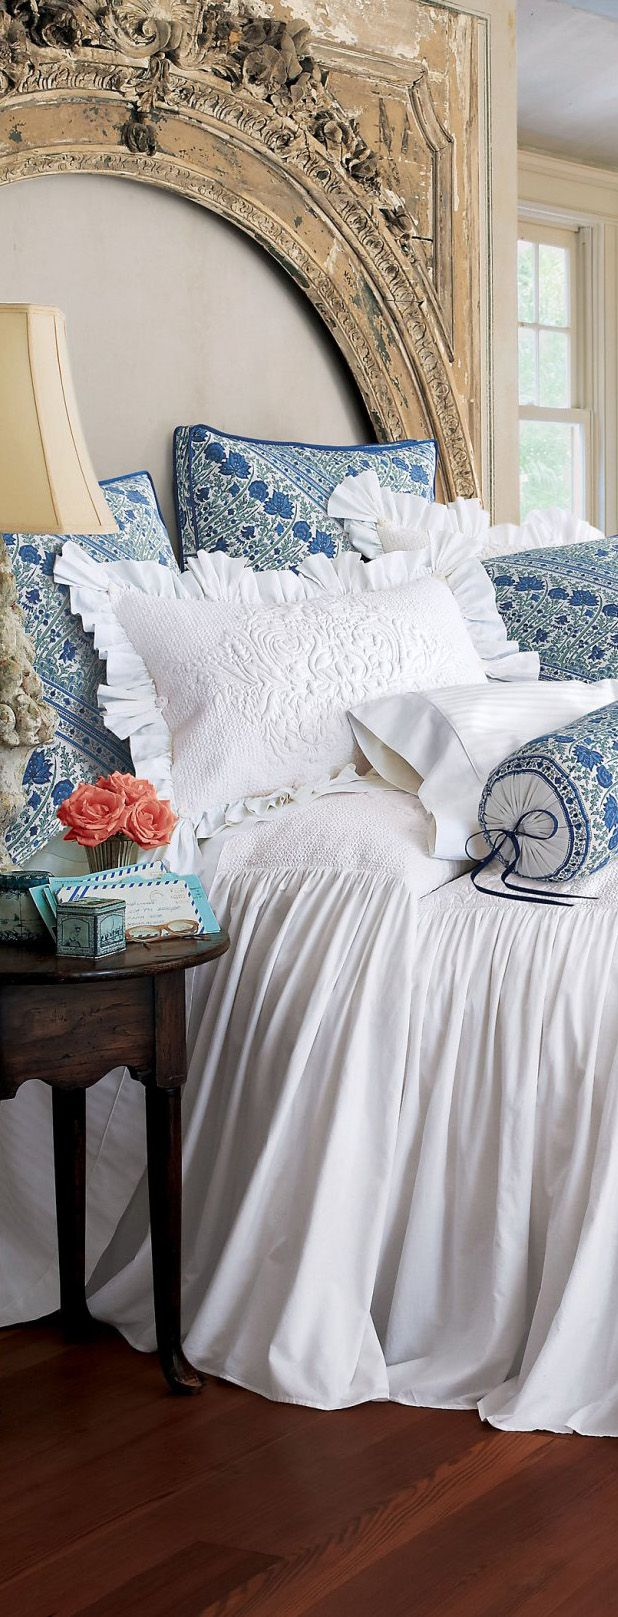 Luxury Comforter Sets | Ruffled Bedspread | Luxury Comforter Sets King Size